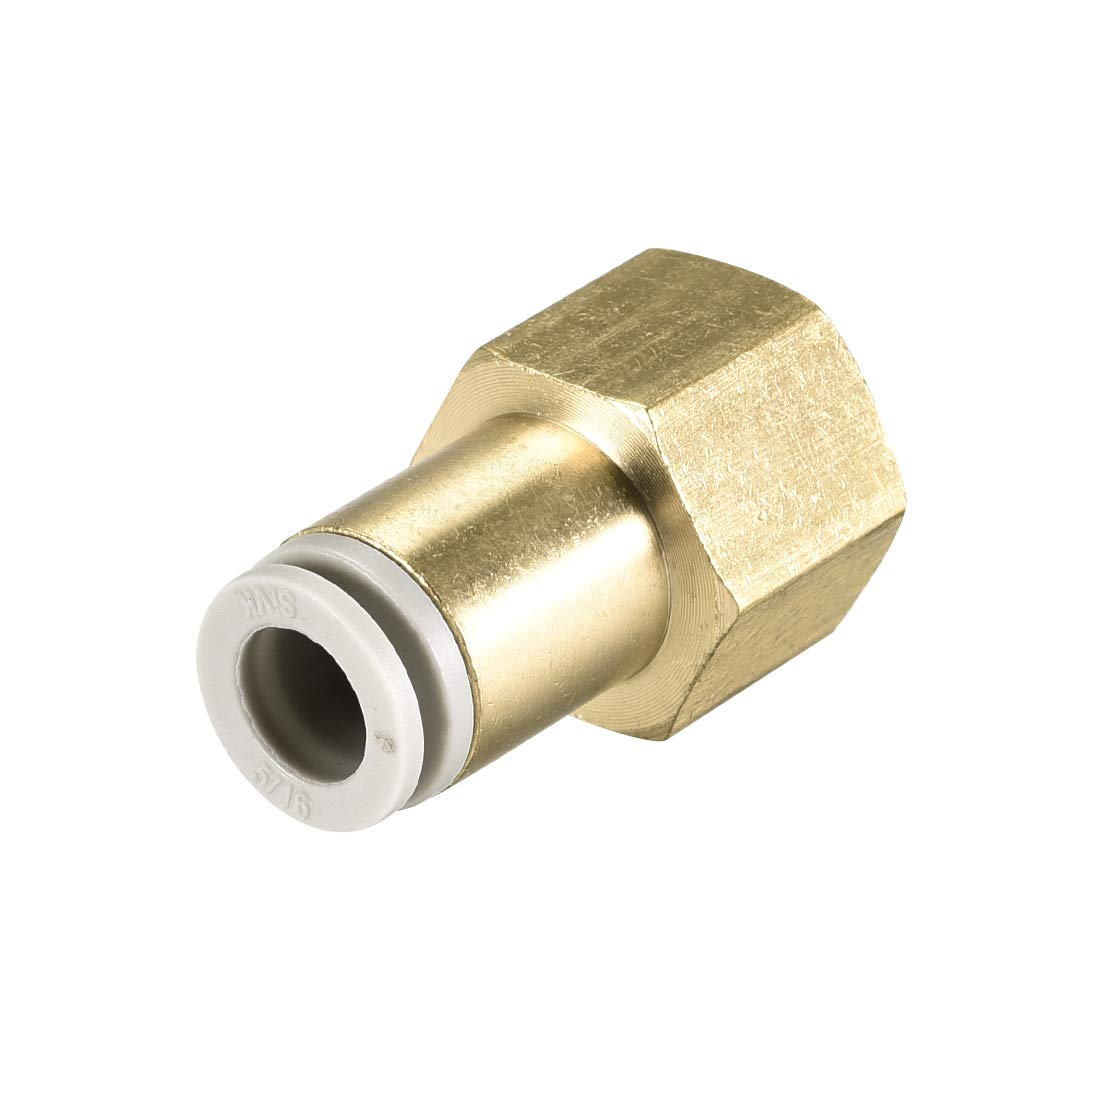 uxcell Push to Connect Tube Fittings 8mm Tube OD x 3//8 PT Female Straight Pneumatic Connecter Pipe Fitting Golden Tone